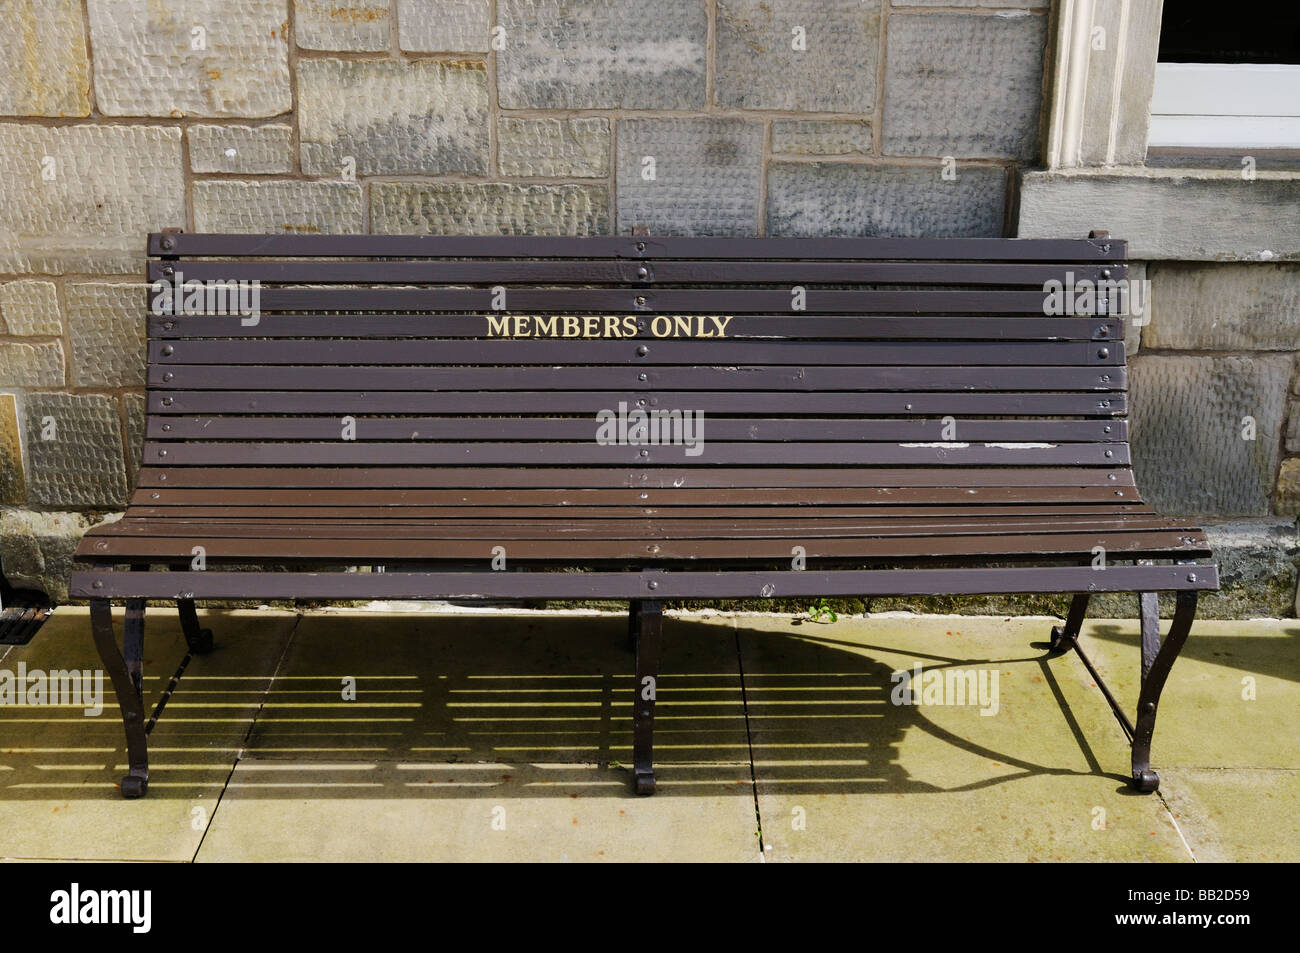 Bench marked 'members only' - Stock Image